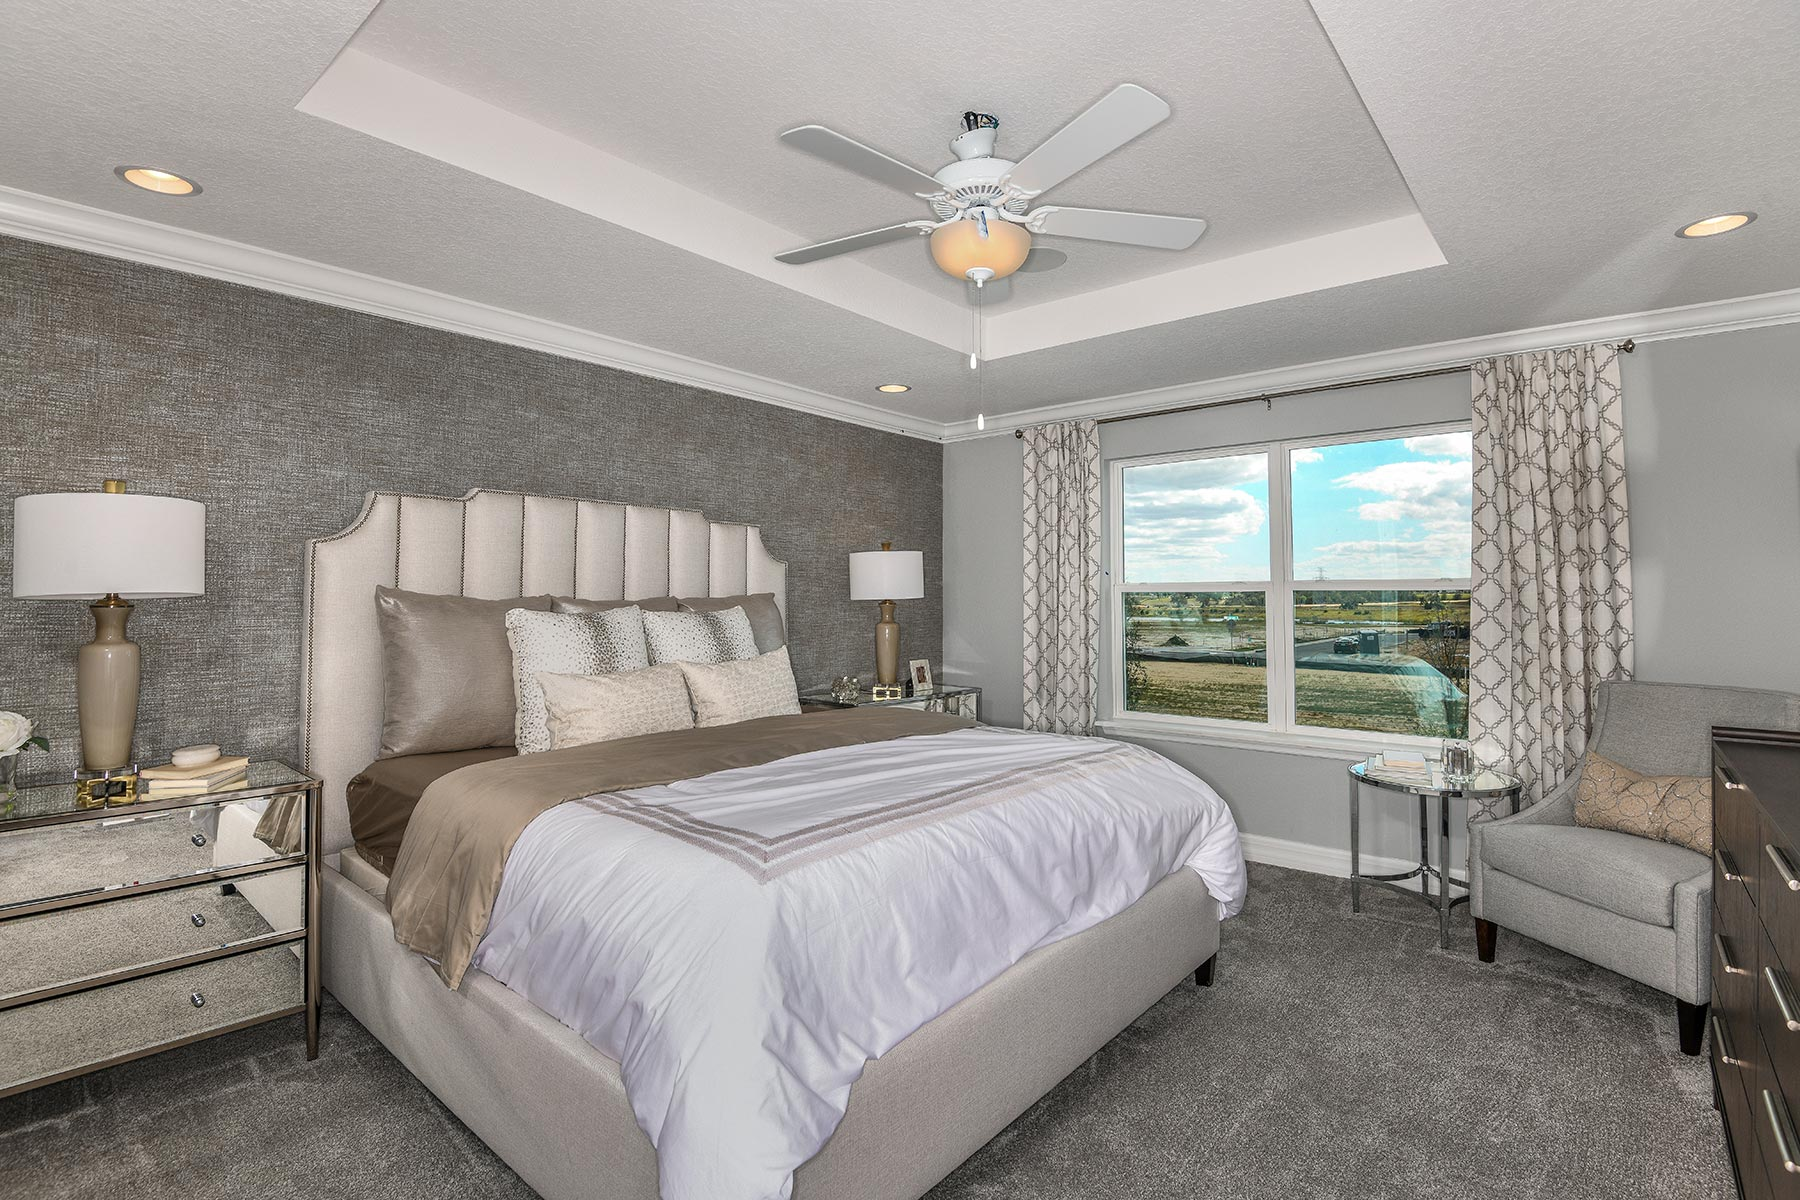 Waterbrooke Bedroom in Clermont Florida by Mattamy Homes